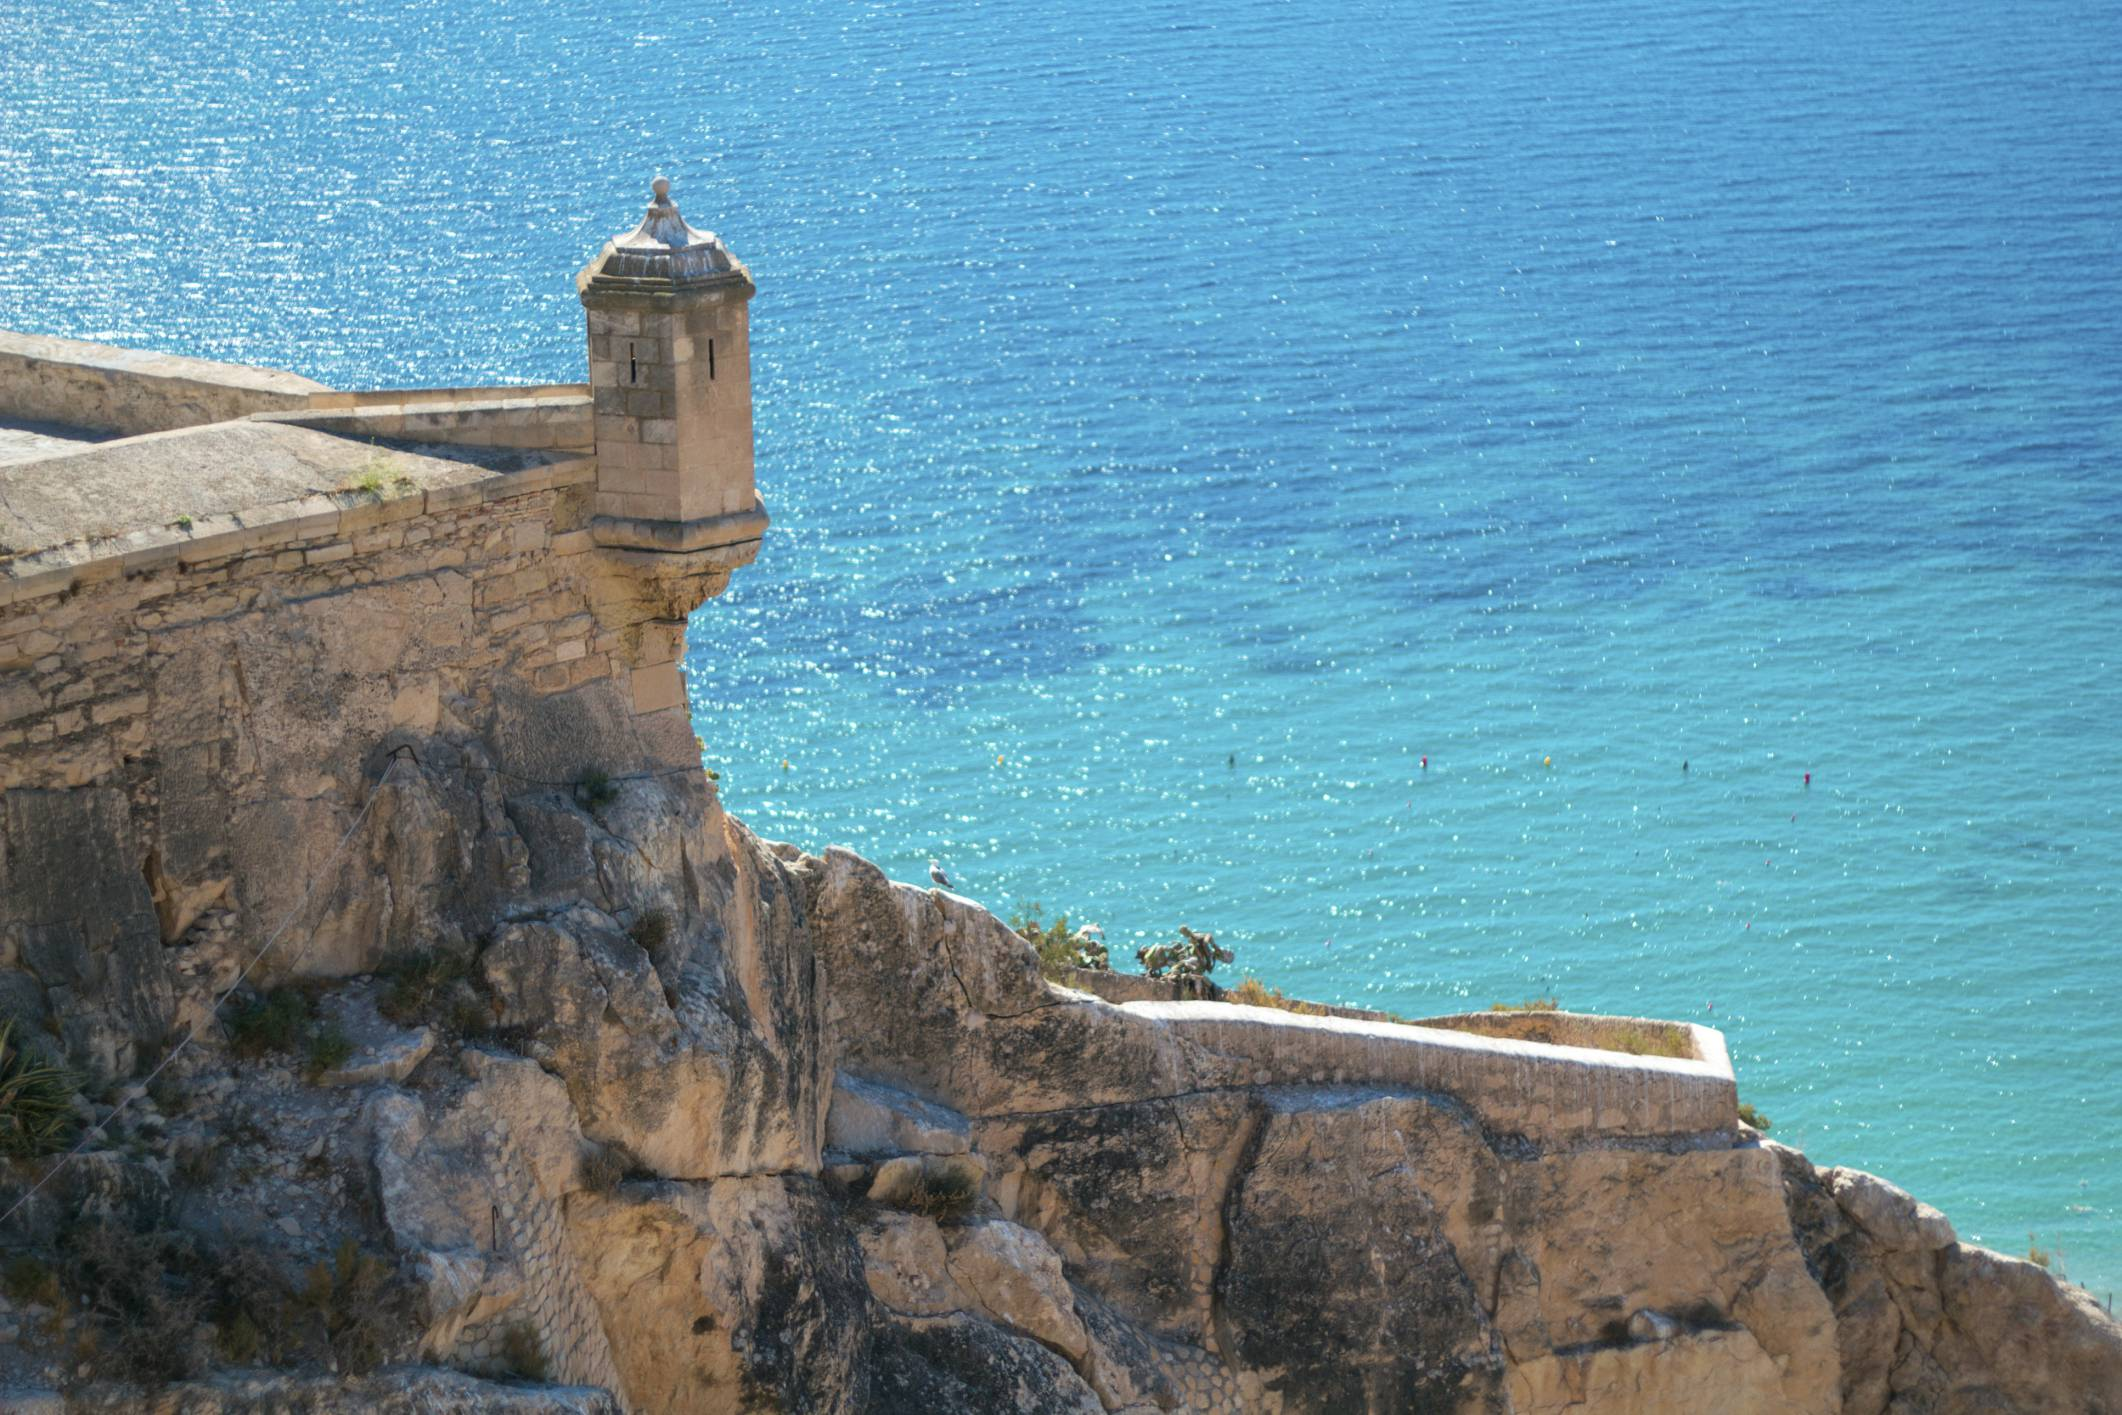 Alicante, mare e castello (Thinkstock)